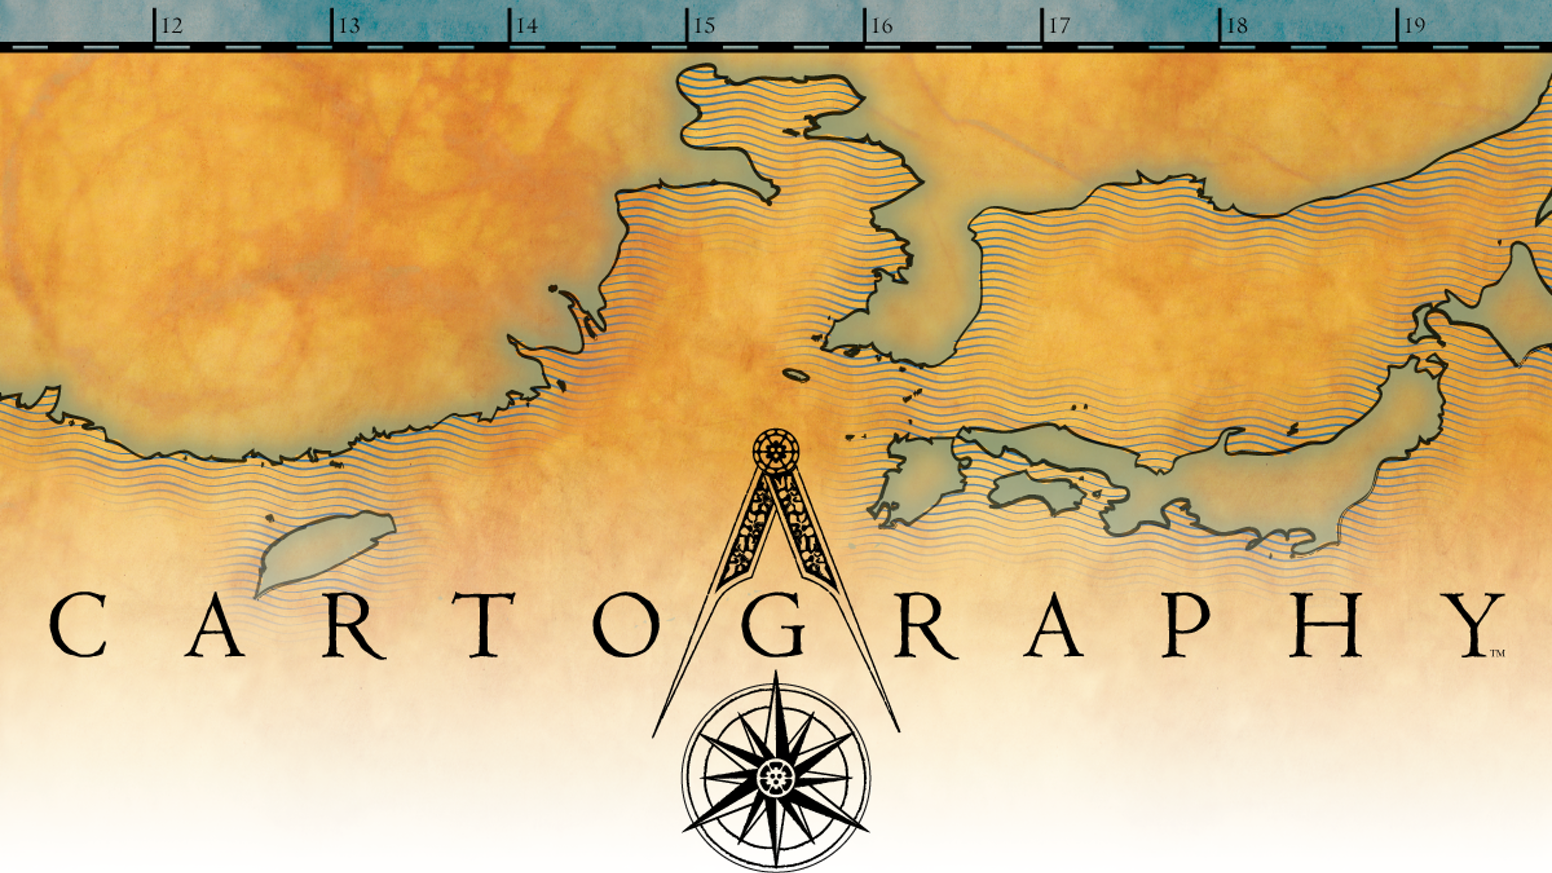 Cartography: A map-making, territory claiming, strategy game. 2 players, ages 10 and up. Adjustable play time starting at 15 min.